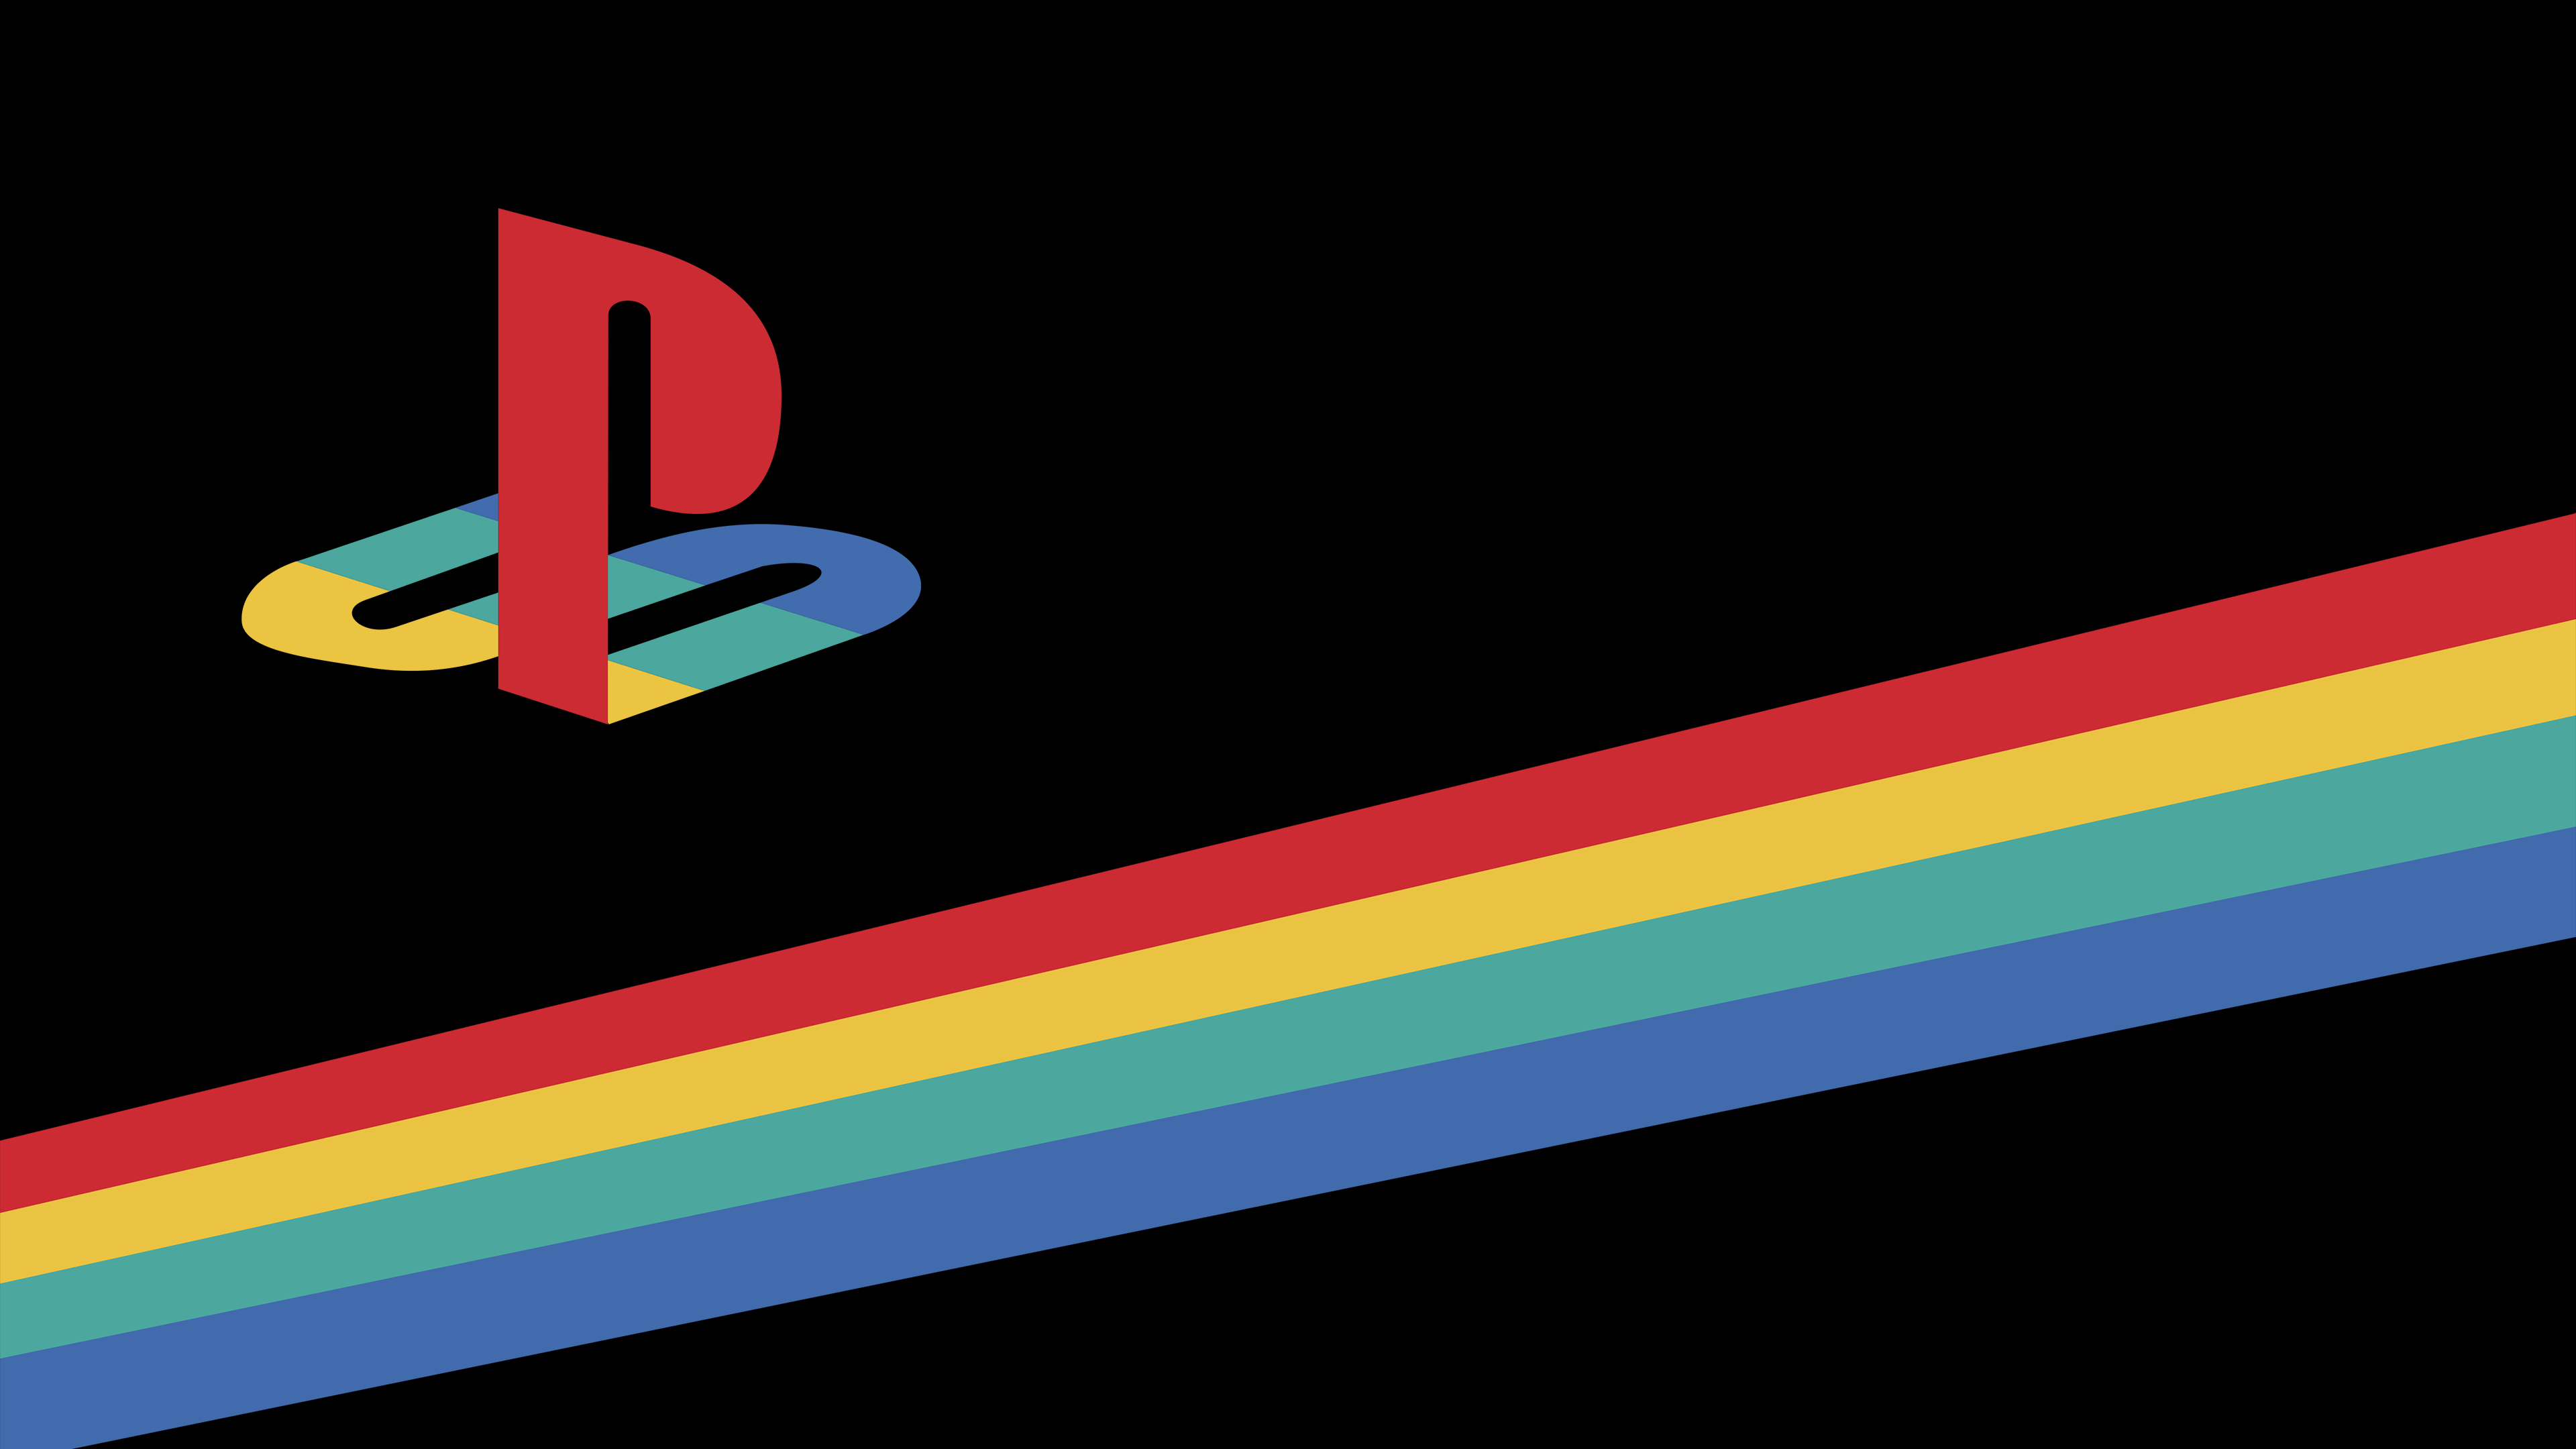 Retro Playstation Wallpapers Wallpaper Cave